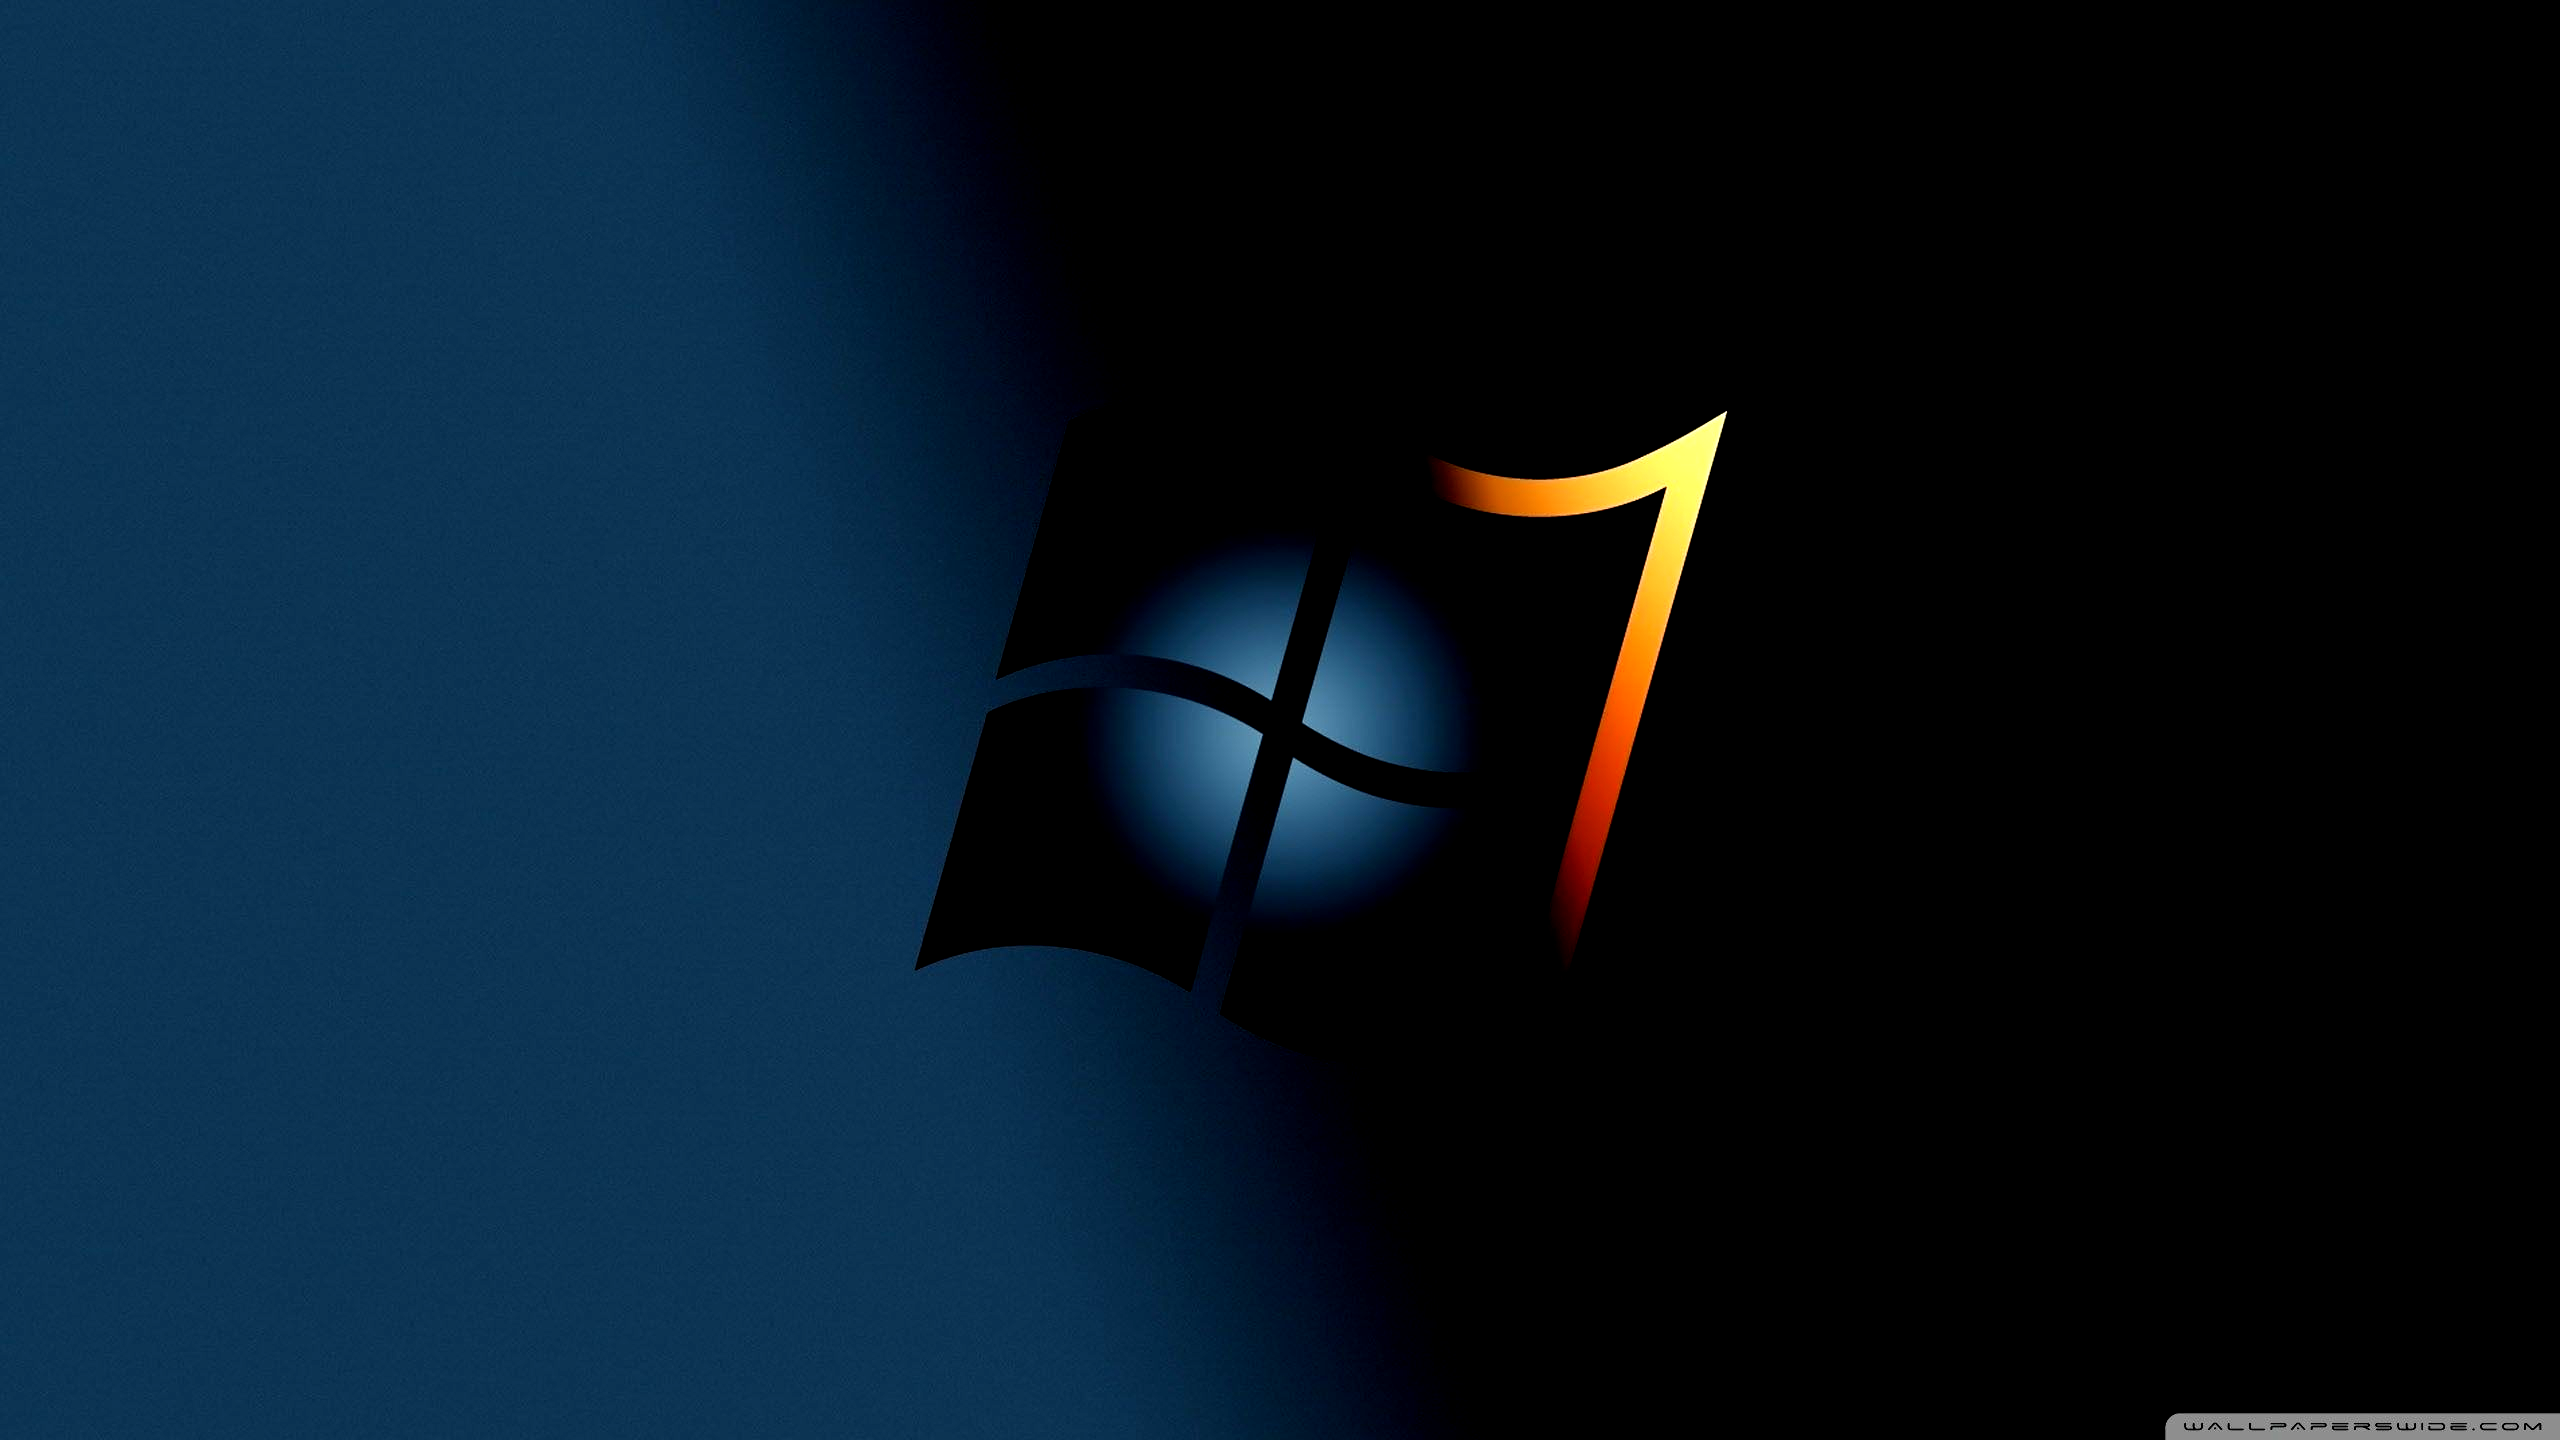 Hd 4k Wallpapers For Pc Windows 10